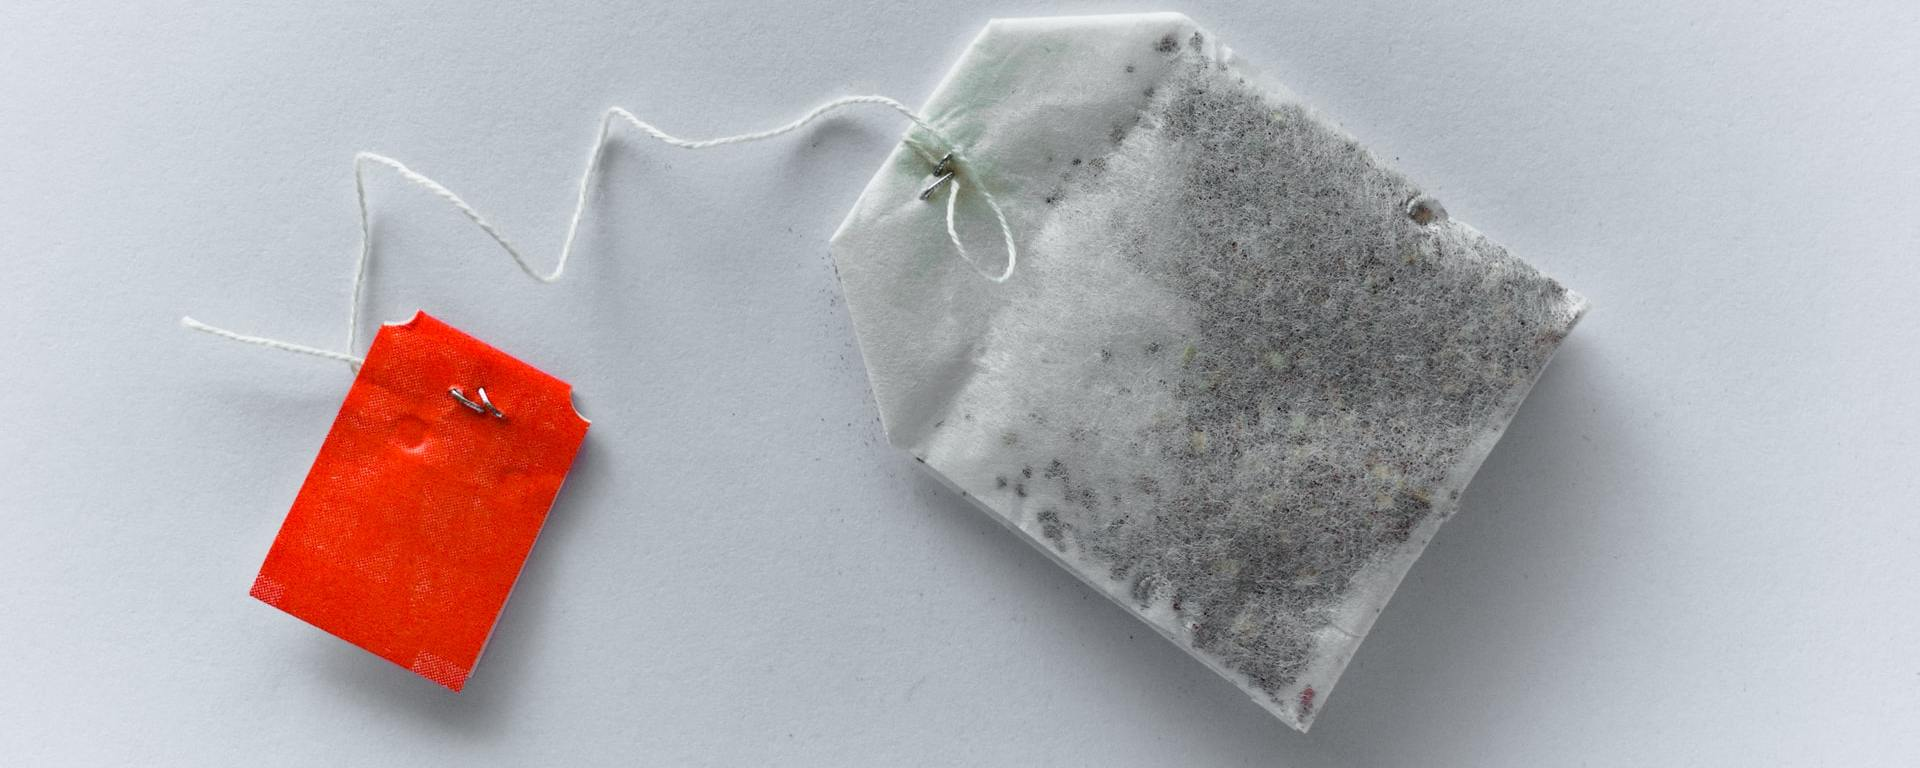 tea bag photo cred Linda Sanchez Unsplash